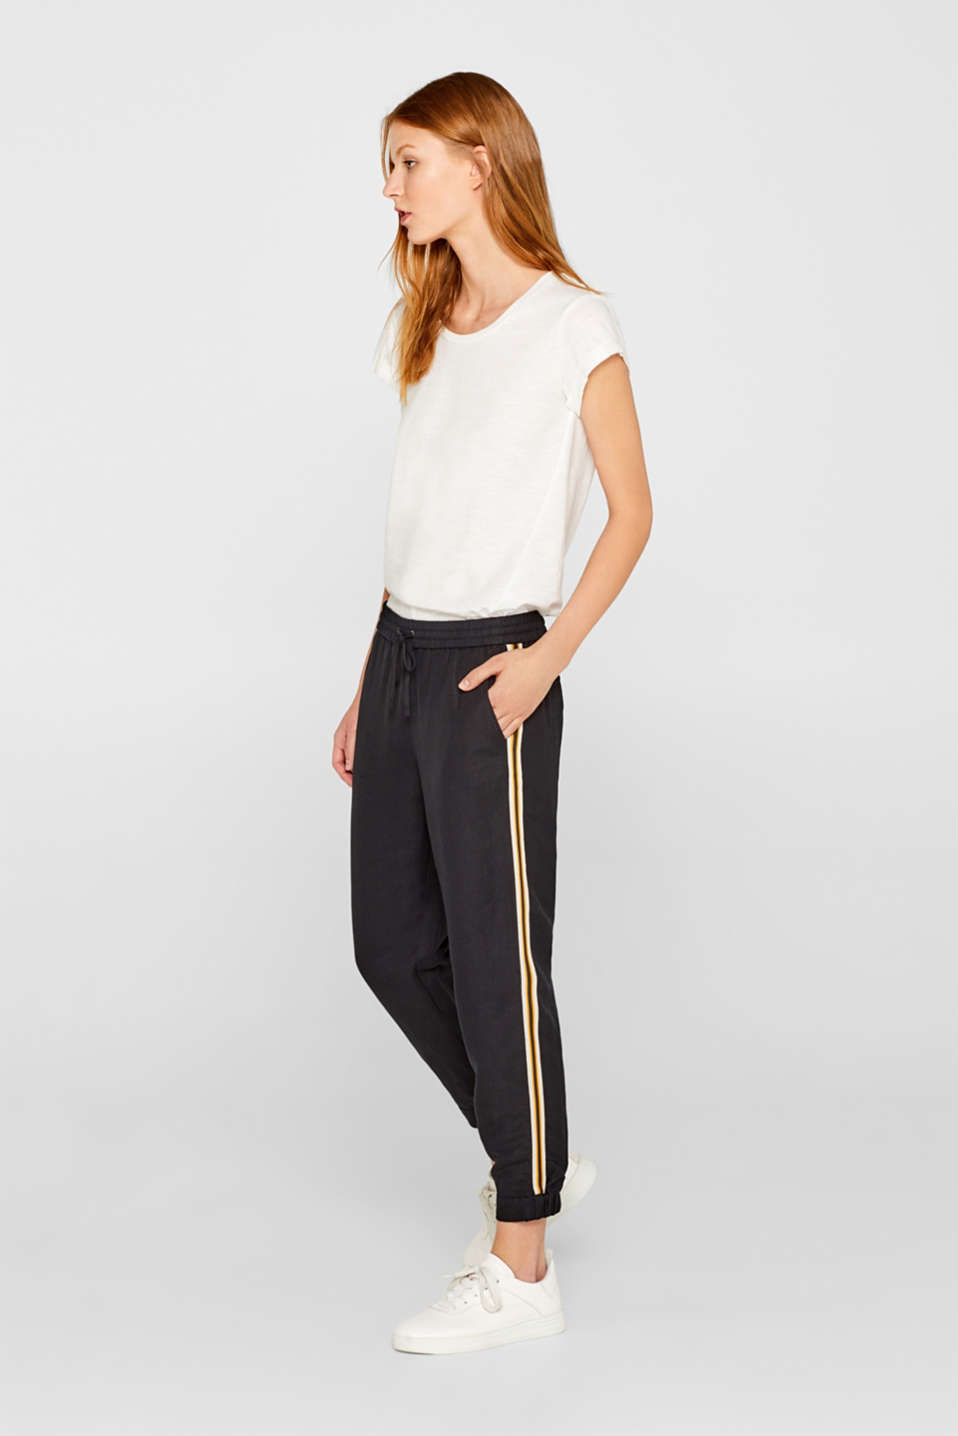 Esprit - Made of blended linen: Cuffed trousers with racing stripes